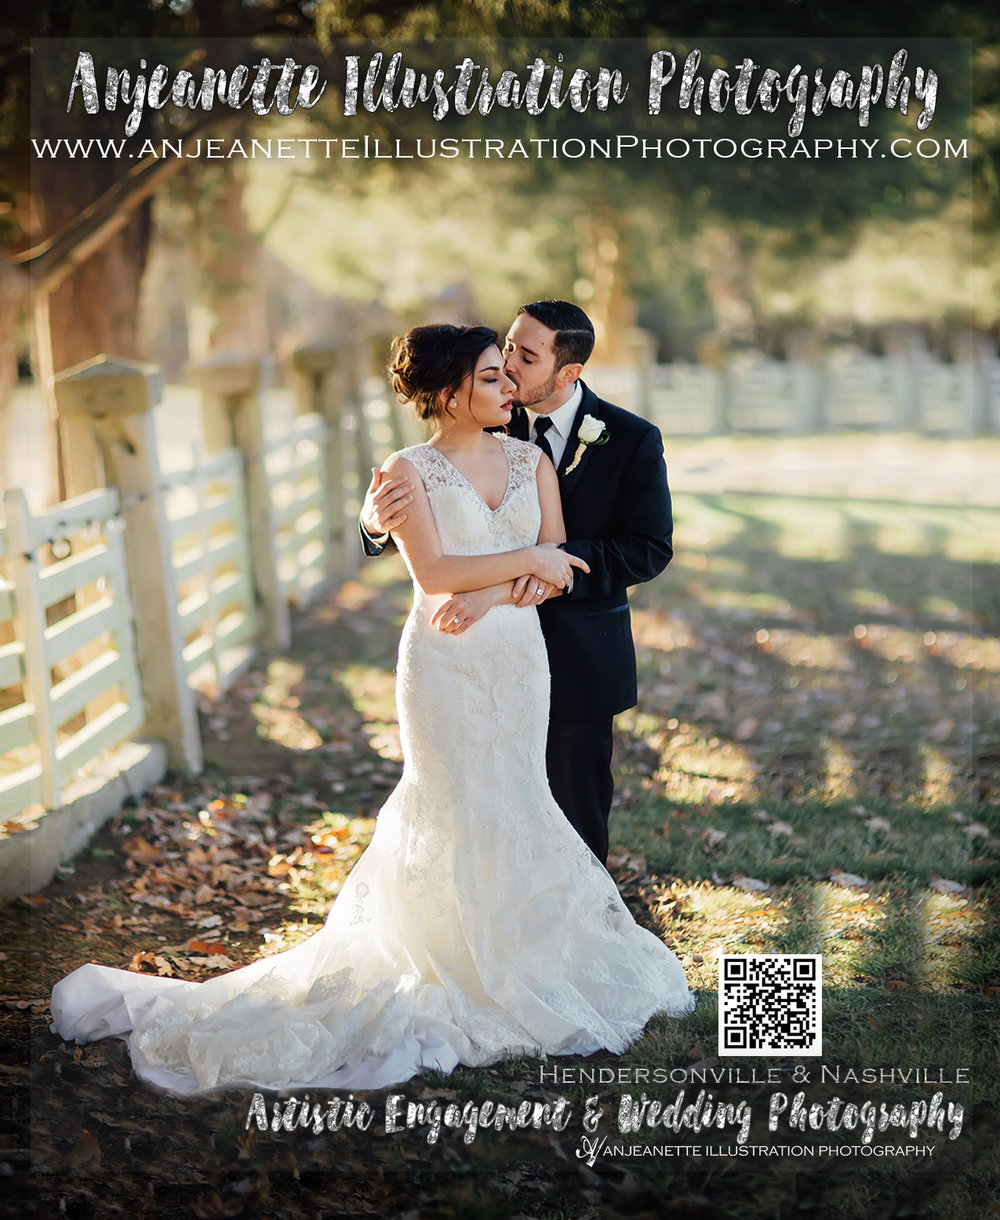 Sumner County Wedding 37075 Photographer anjeanette Illustration Photography